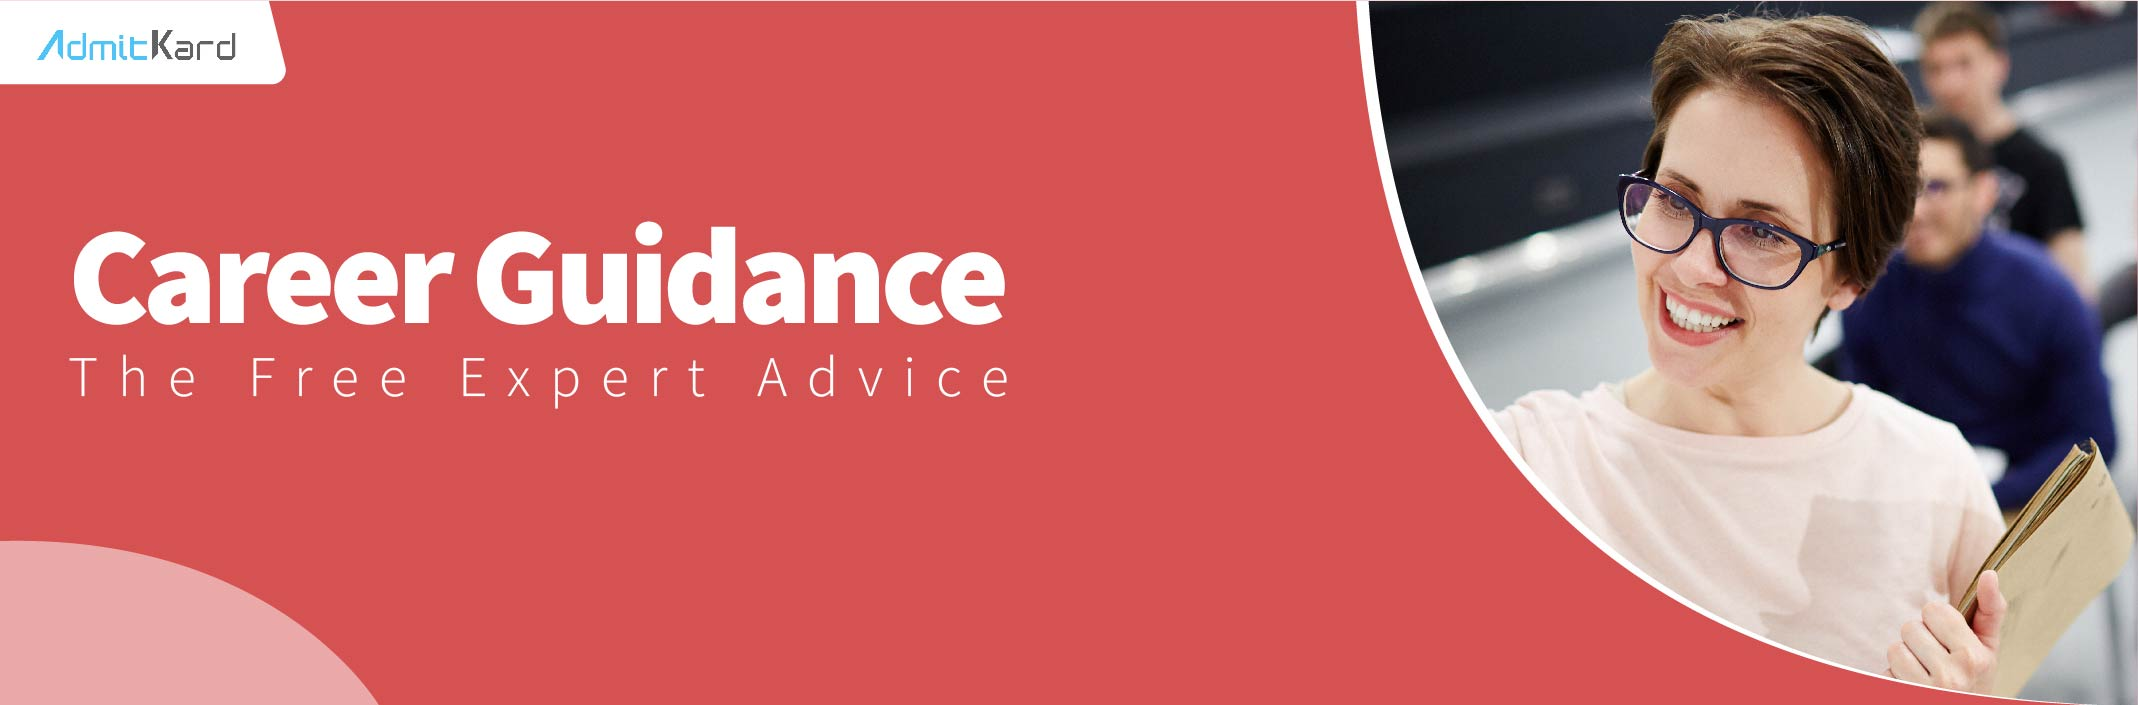 Career Guidance A Free Expert Advice For Students In 2020